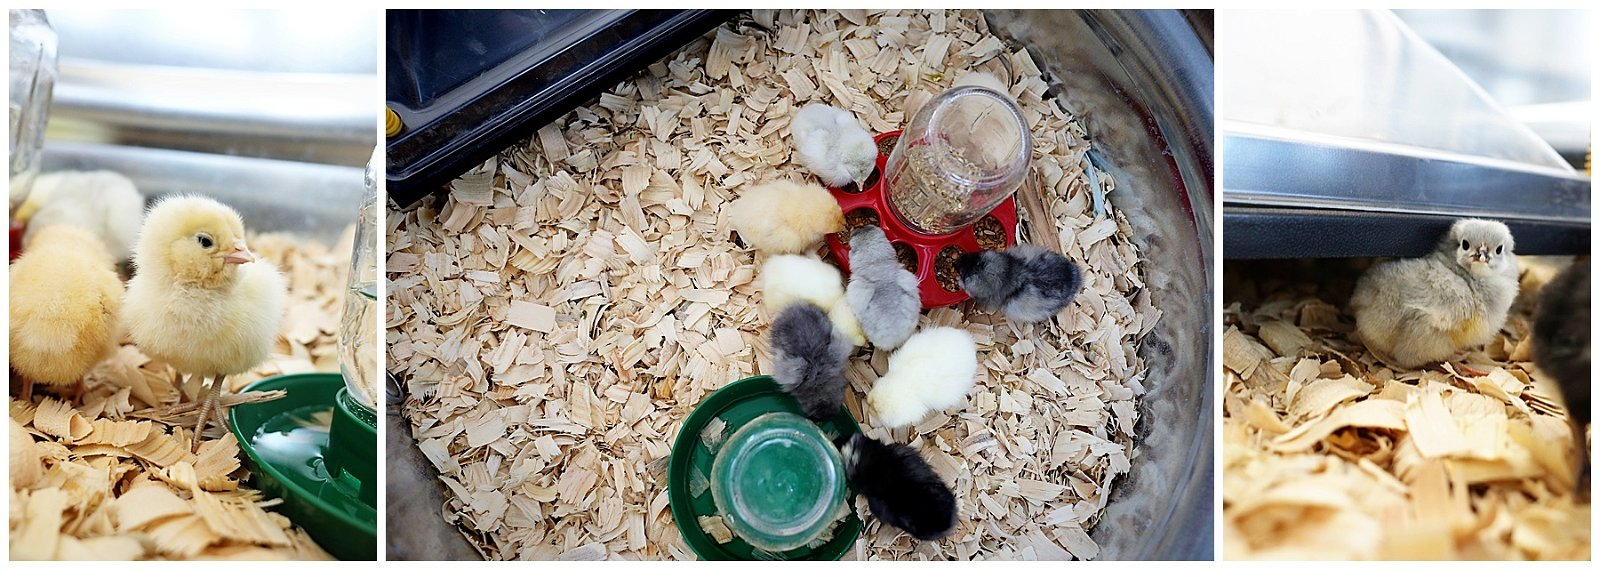 What we learned raising baby chicks